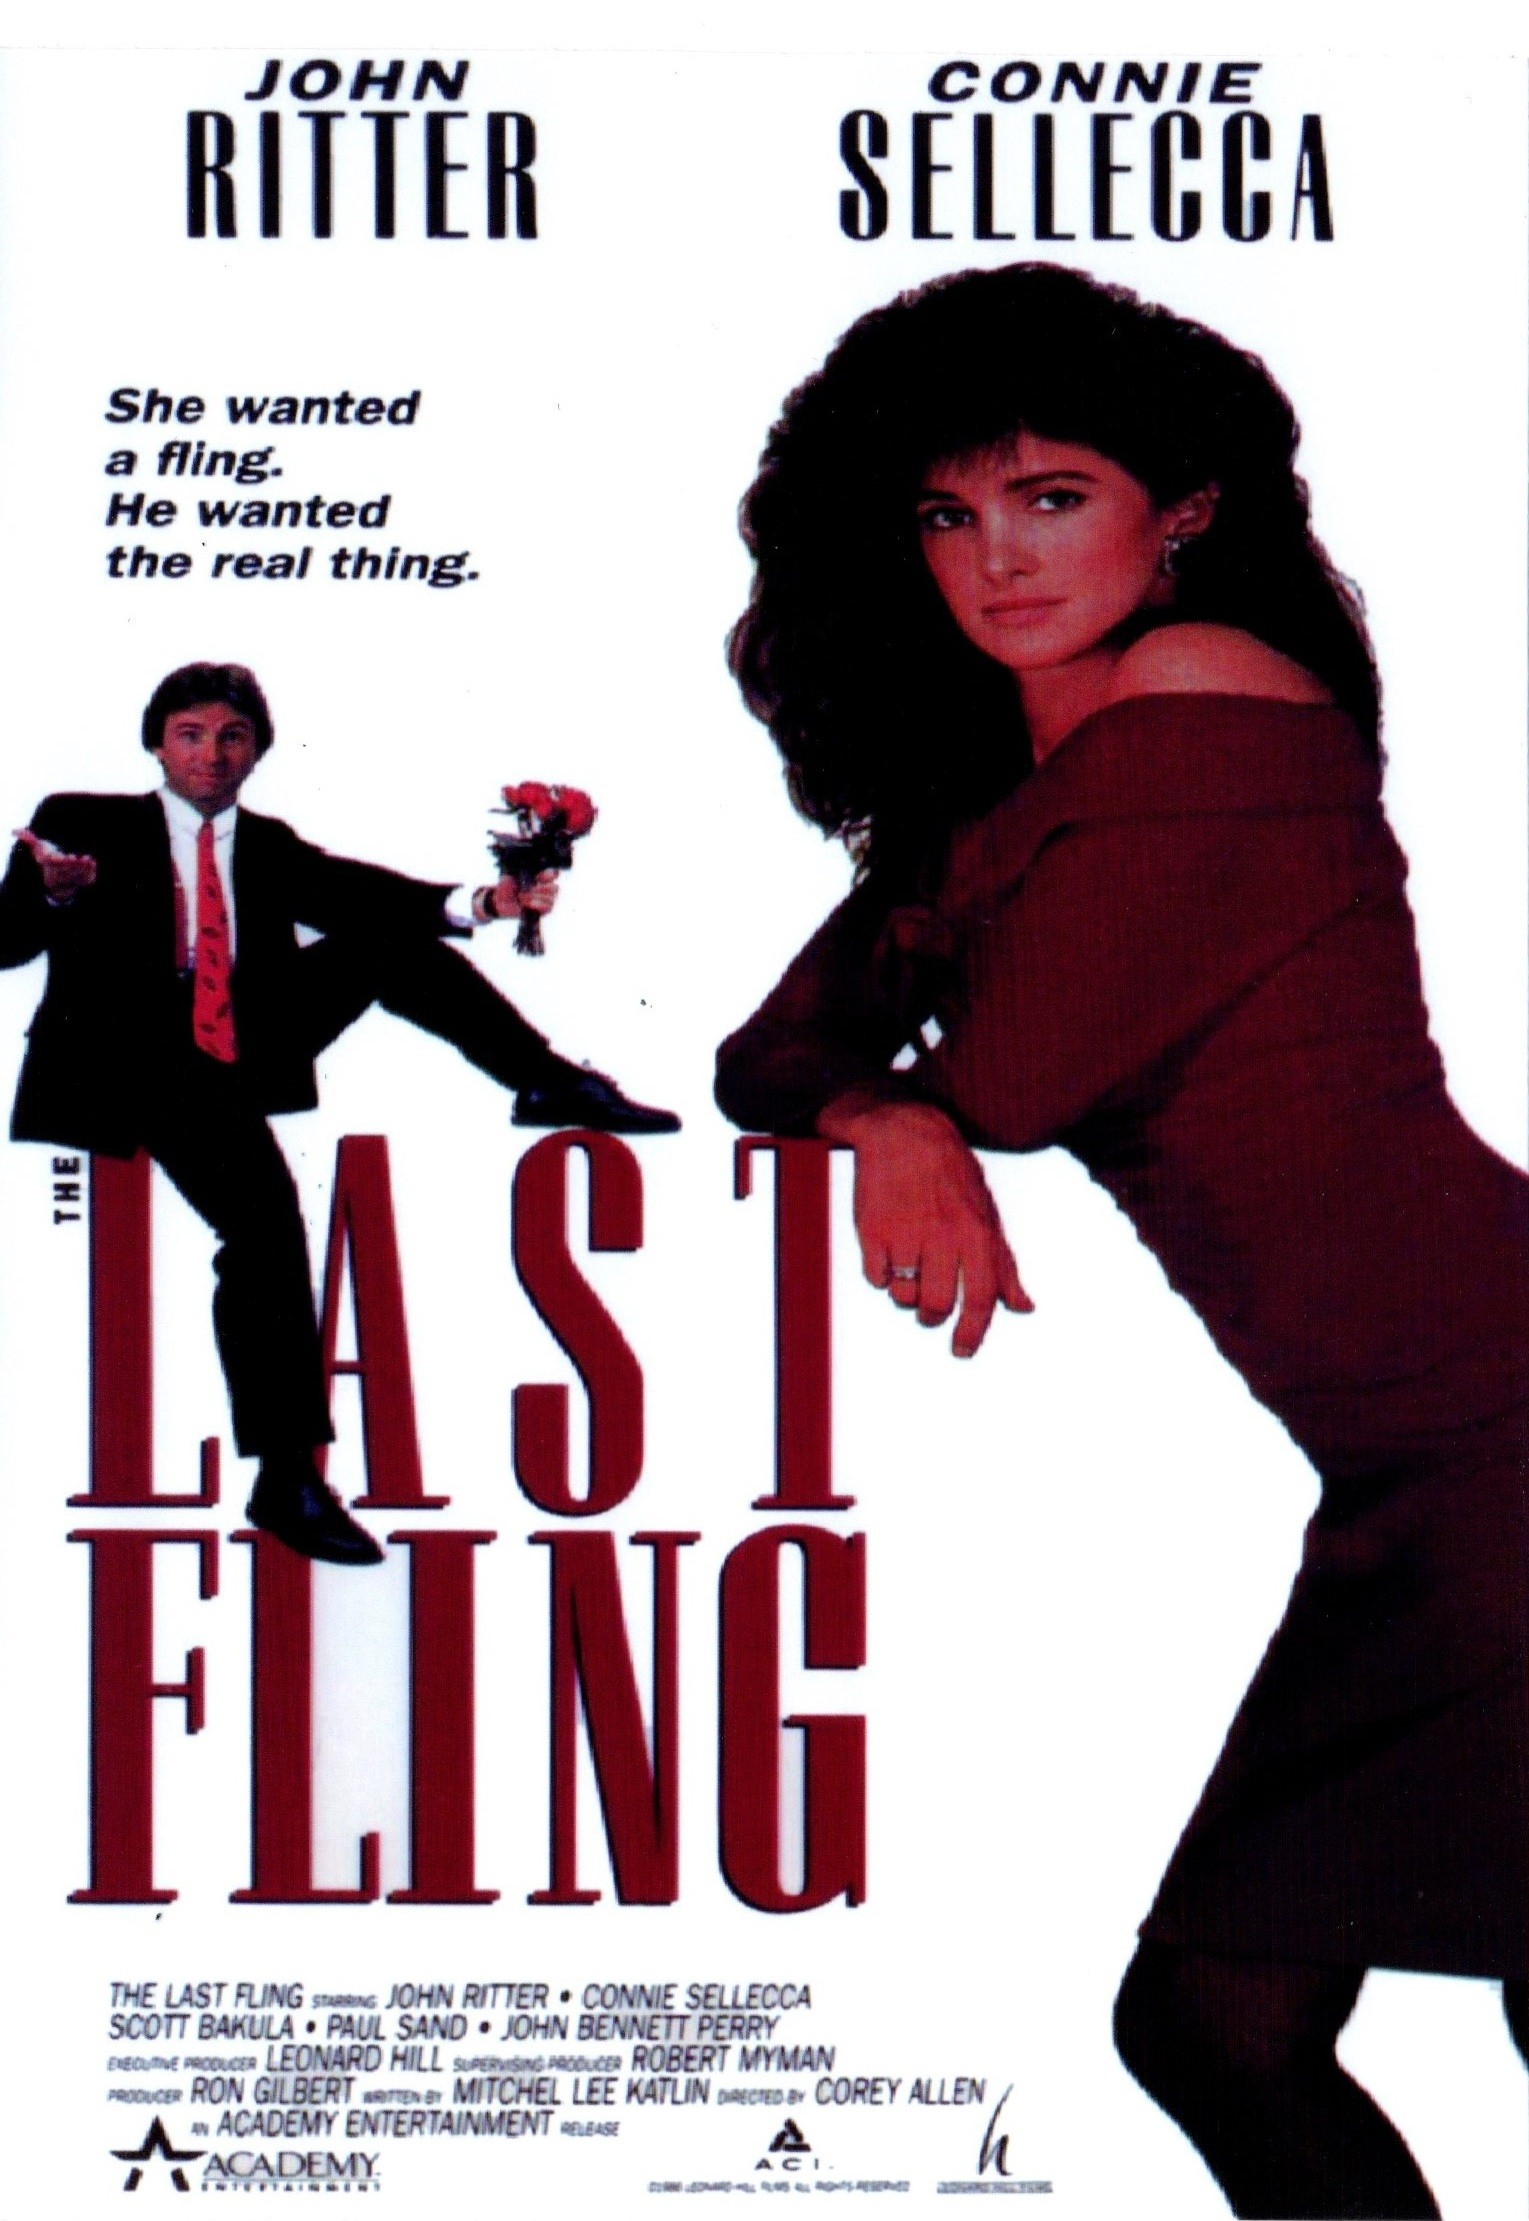 Connie Sellecca the last fling